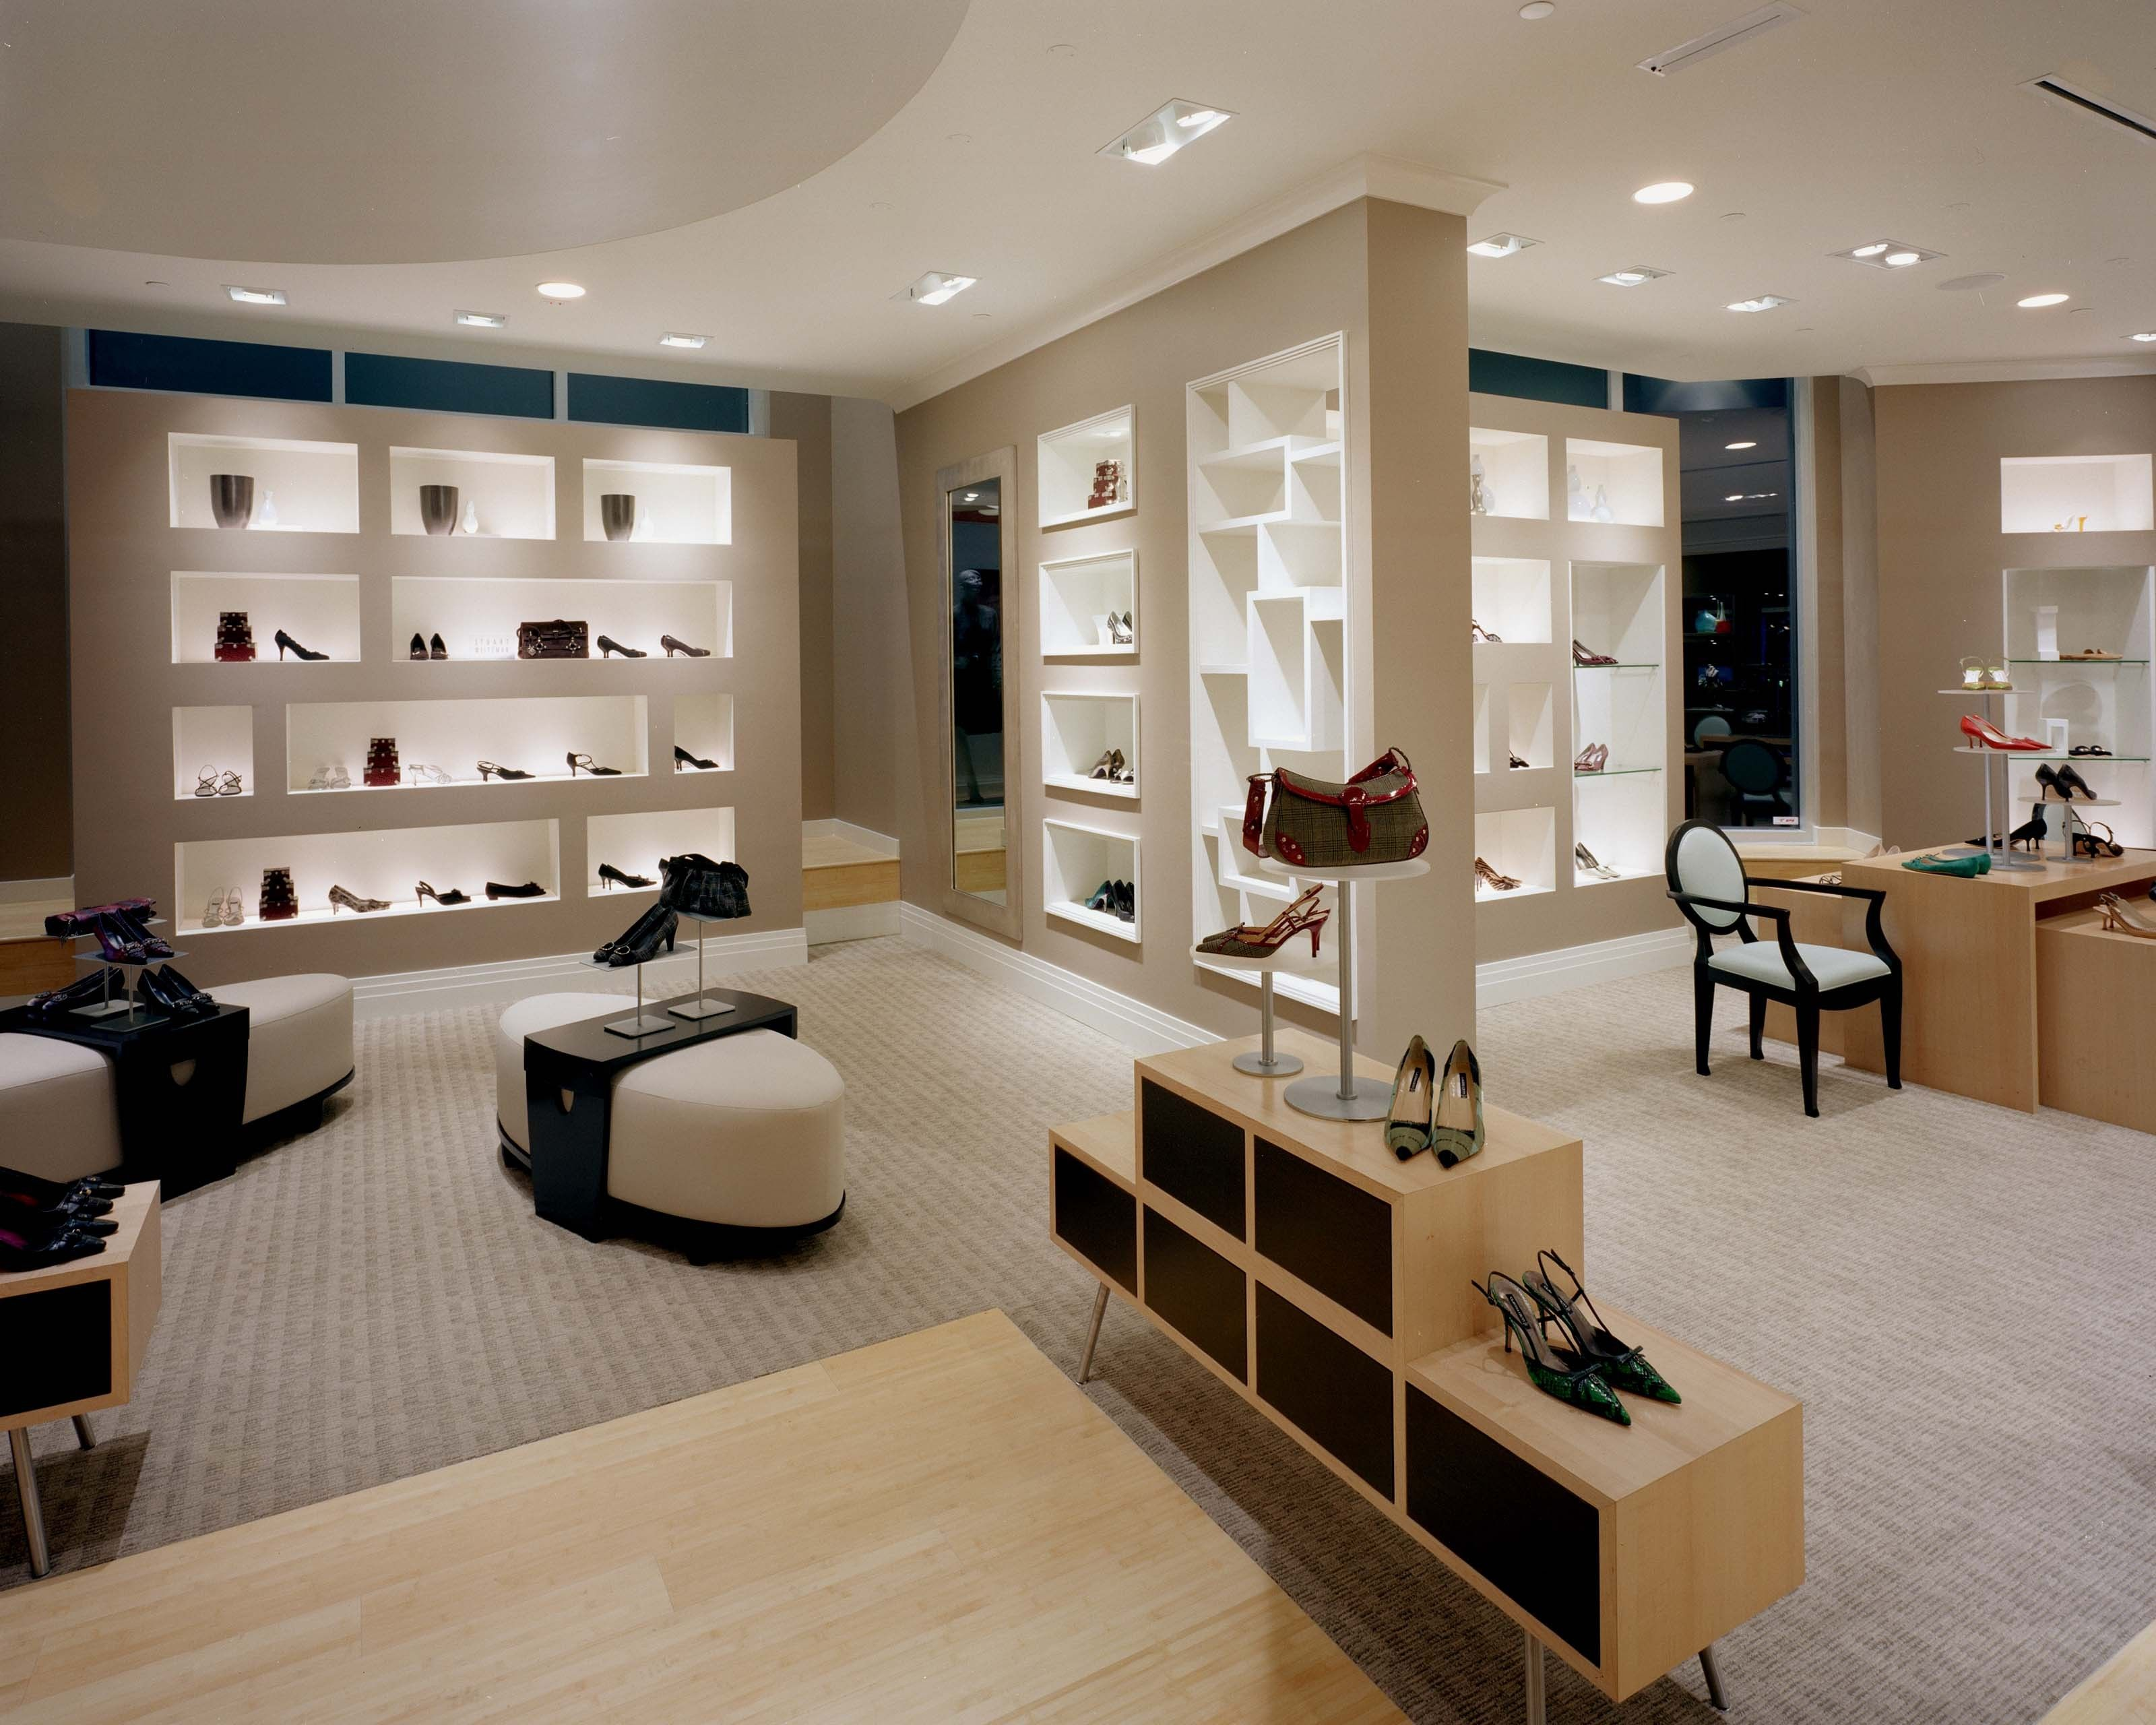 Incroyable 15 Tips For How To Design Your Retail Store | Pouted Online Magazine U2013  Latest Design